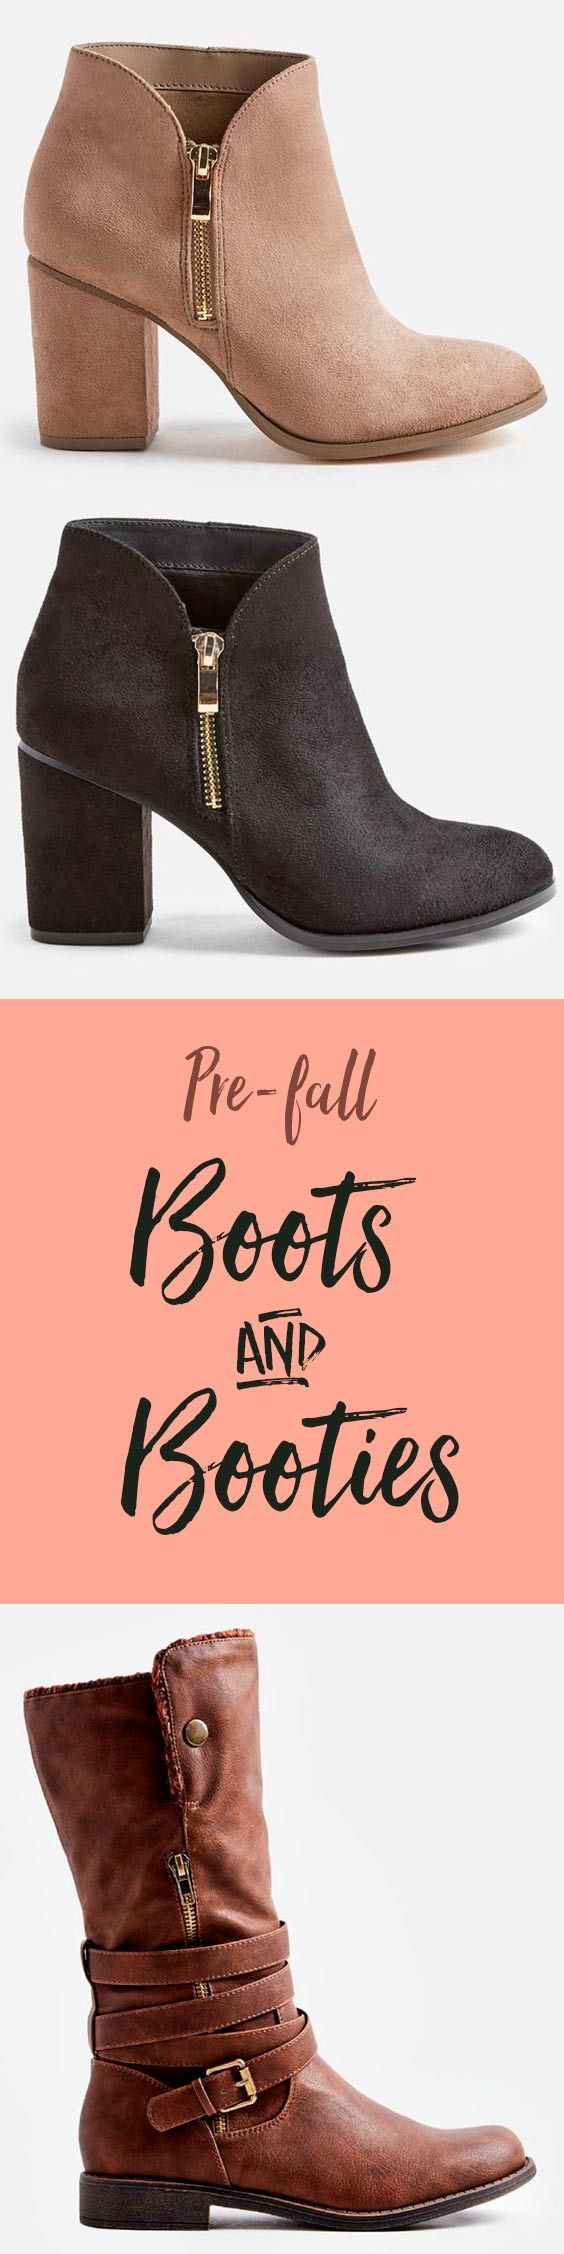 JustFab's Top 3 Boots of the season. Welcome Back Autumn, we missed you!  Whether It's a deep red, Black, or blush Pink, boot season has arrived to your wardrobe by way of these dreamy and rich shoes. Take a look and get inspired by our stylist's take on these chic fall trends.